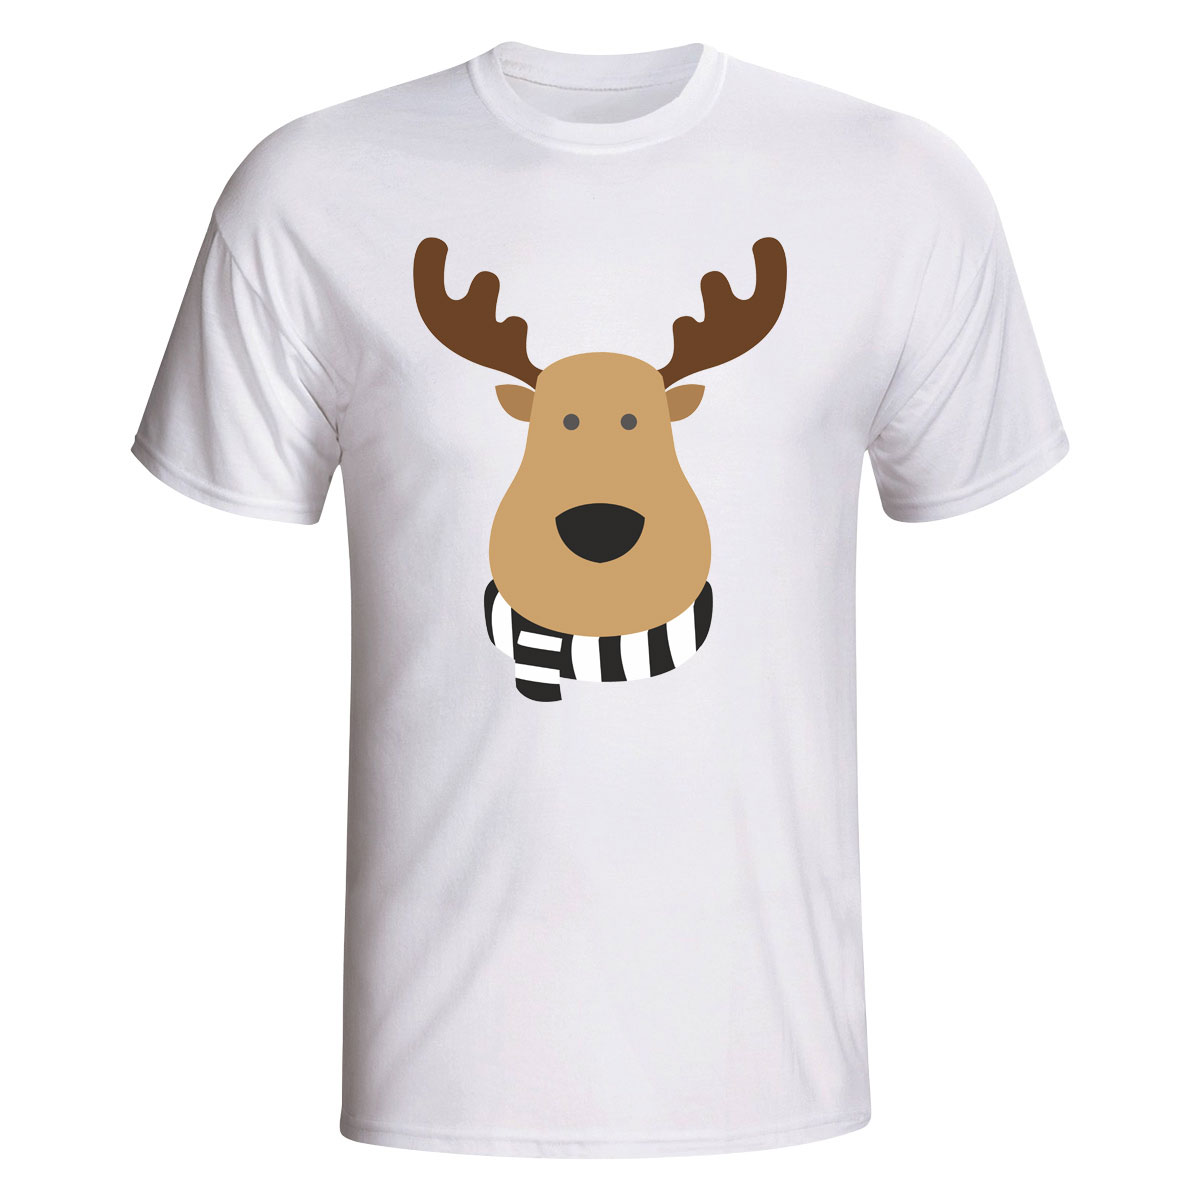 Fulham Rudolph Supporters T-shirt (white)